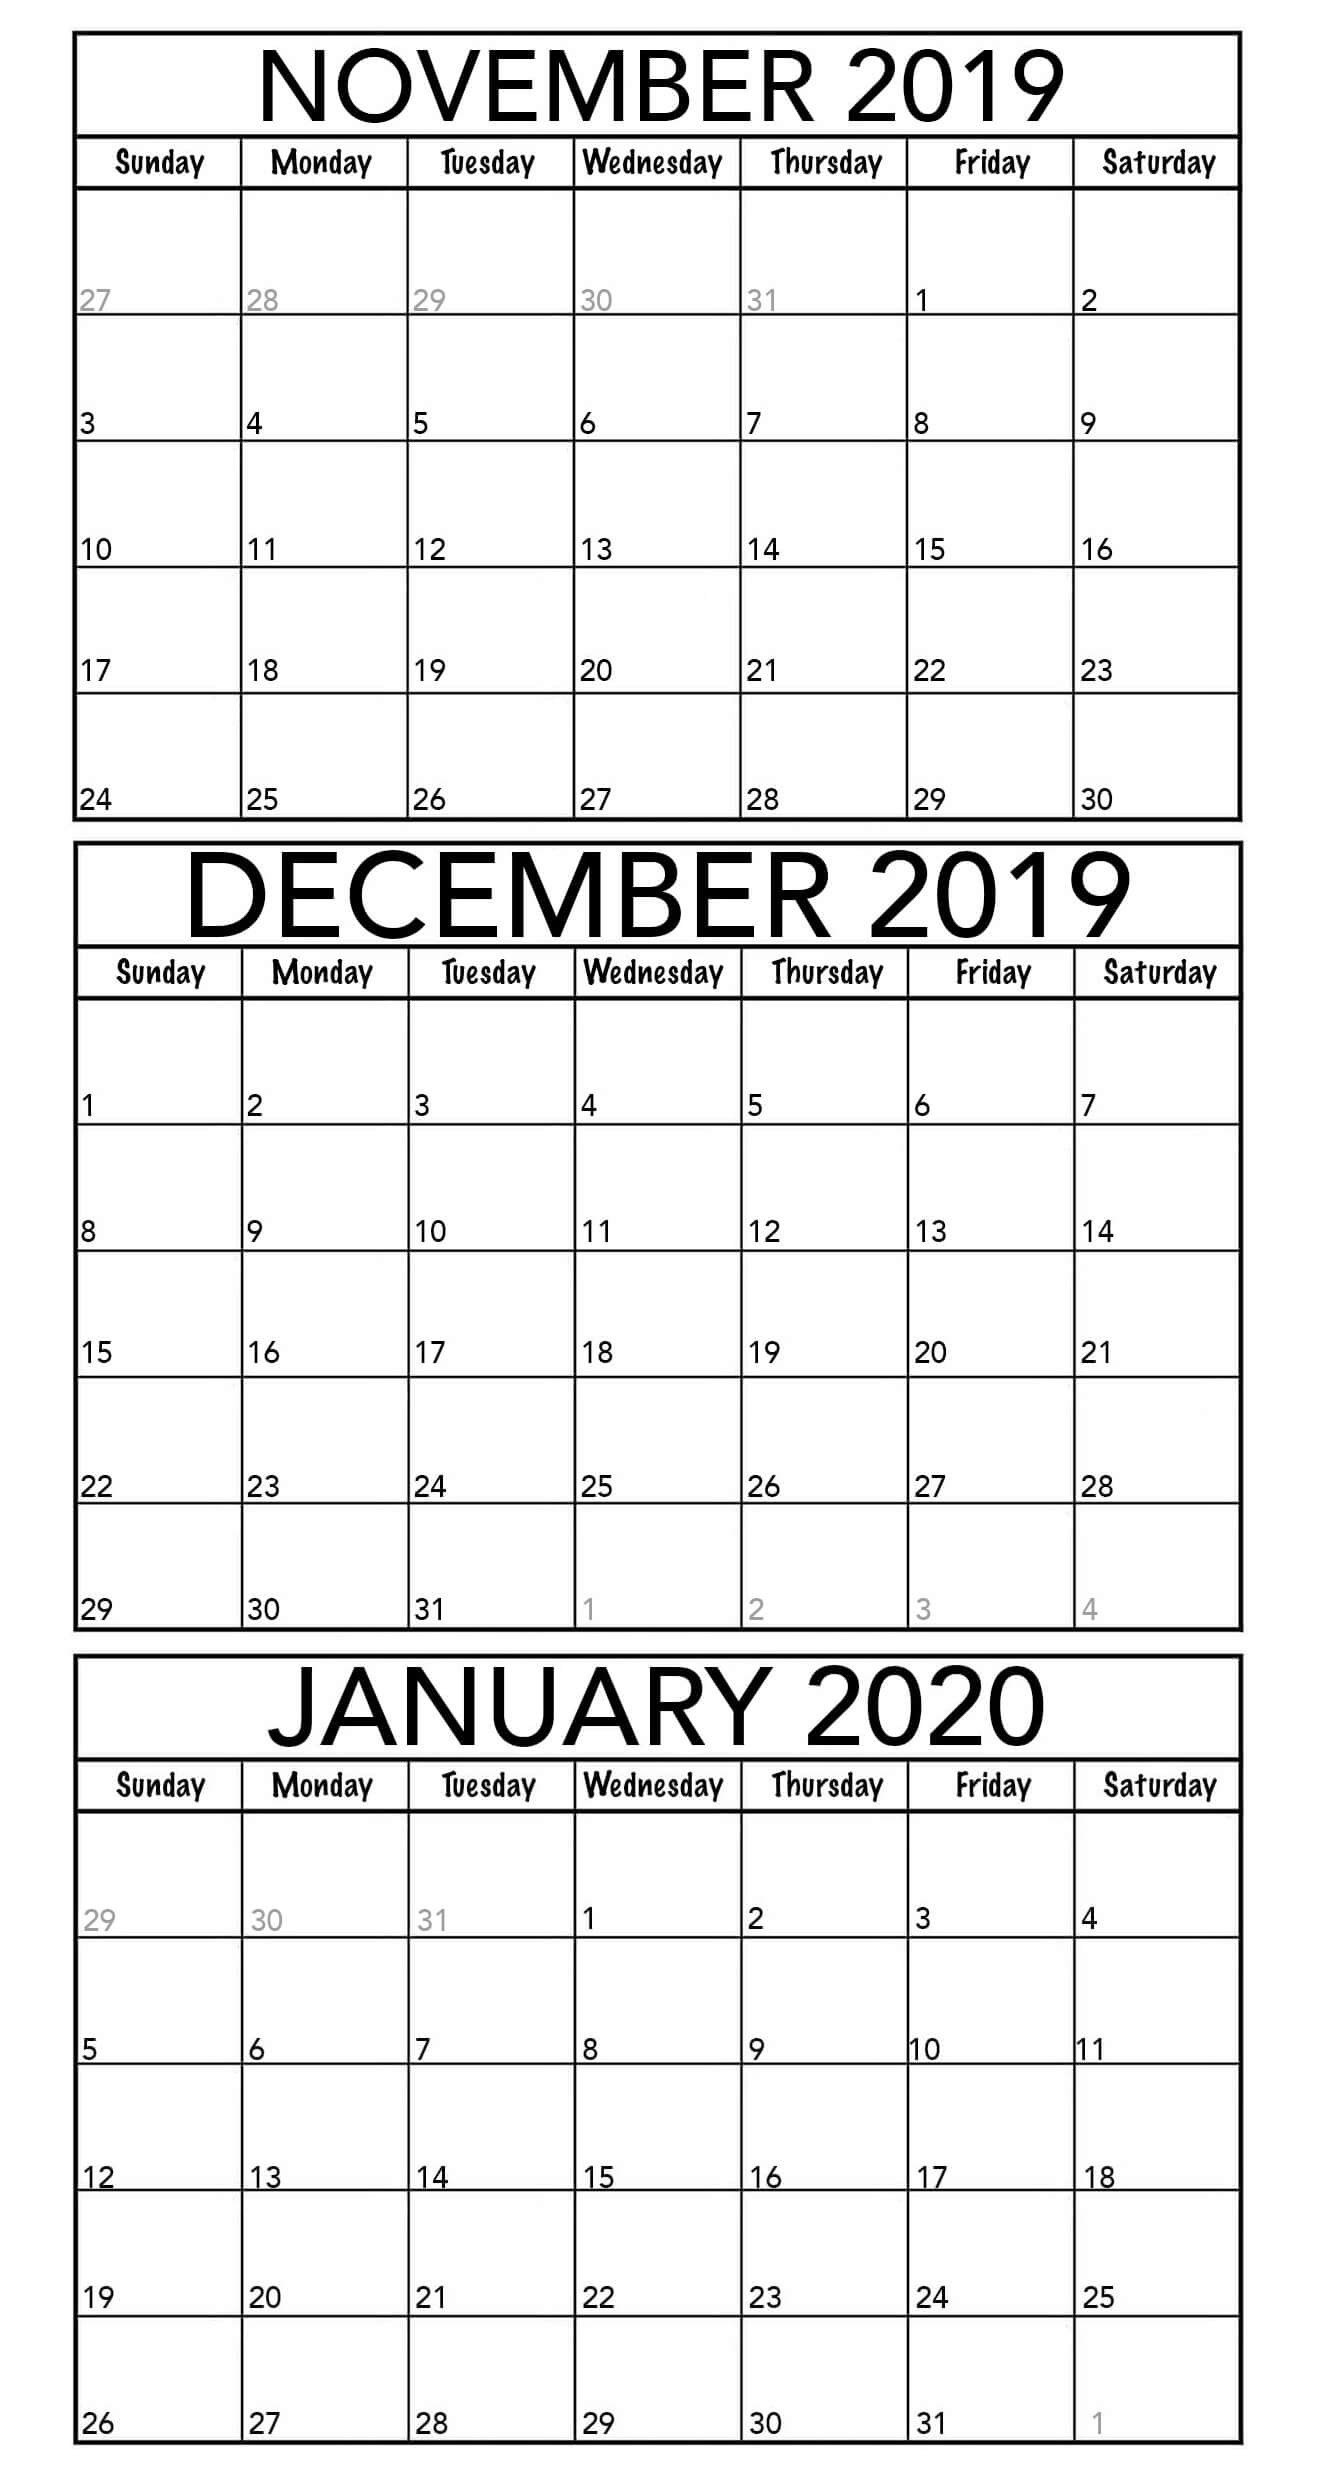 November 2019 To January 2020 Calendar Template  2019 with regard to November December January Calendar